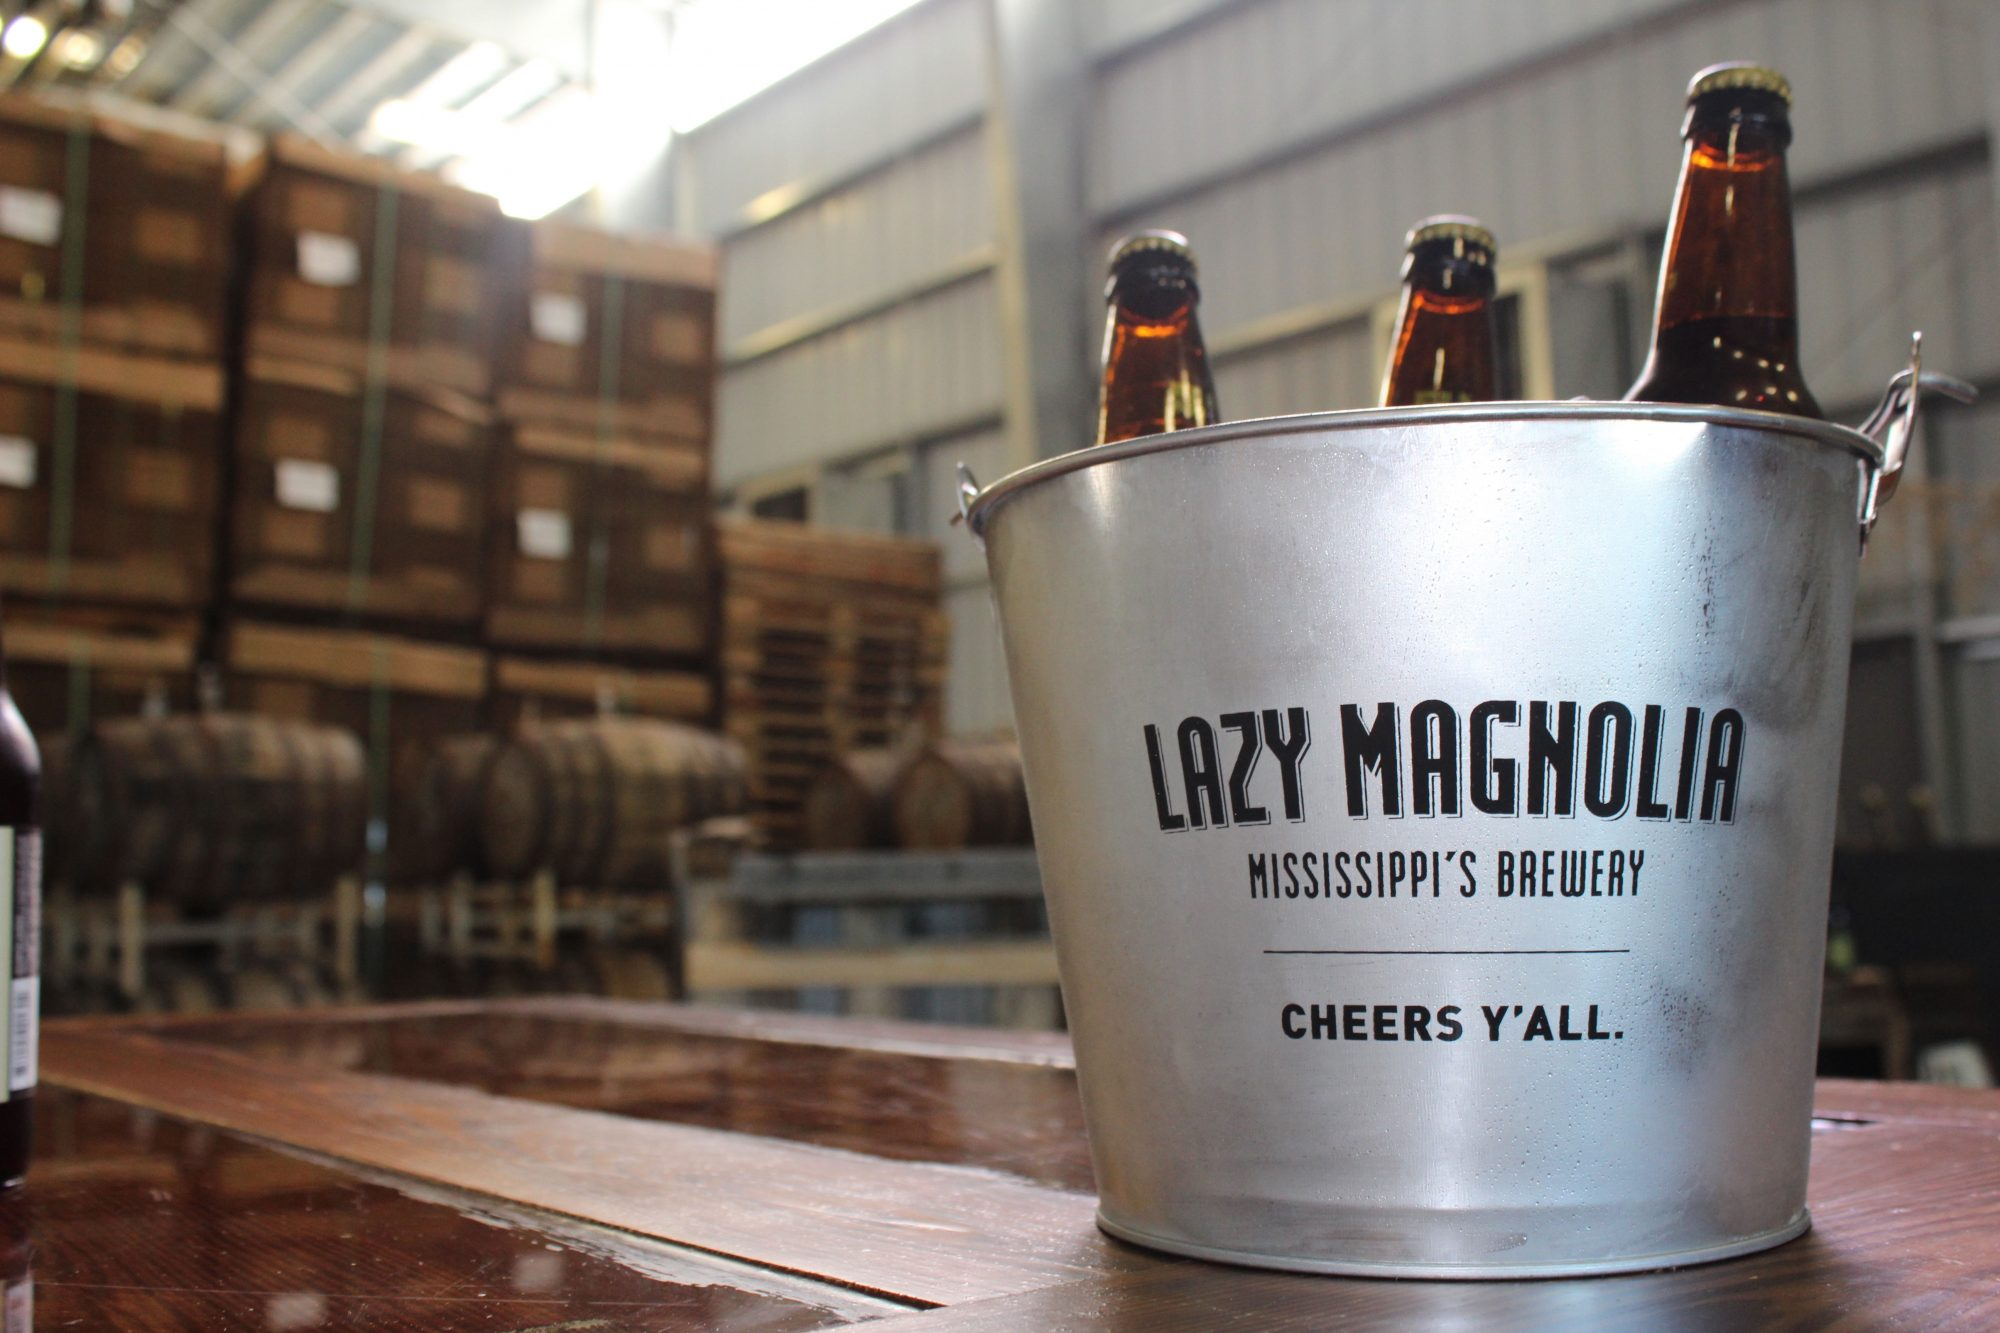 Not Since Prohibition: Lazy Magnolia Brewery